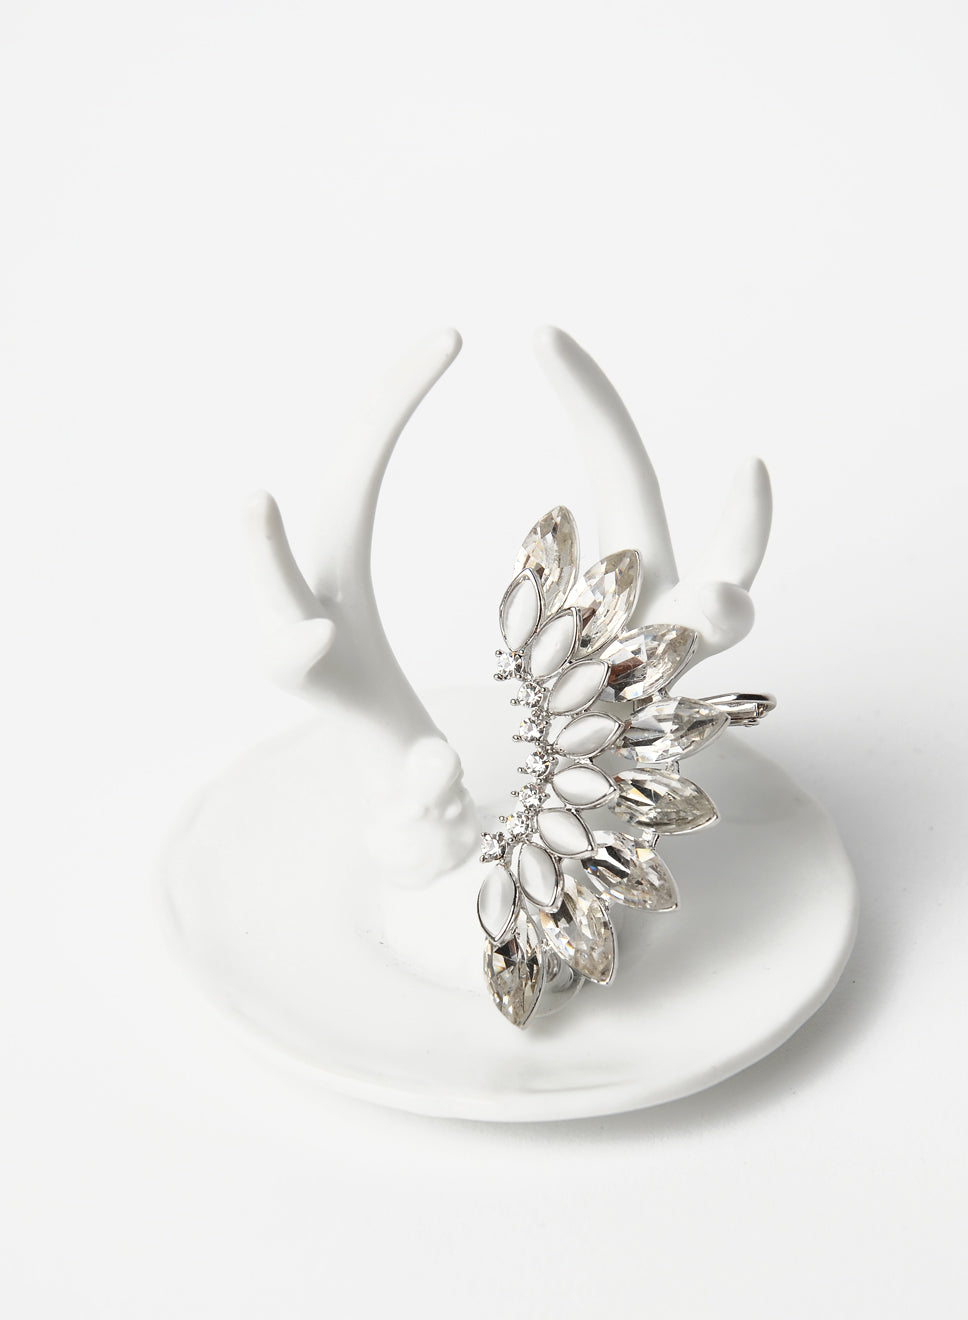 EDEN EMBELLISHED EAR CUFF (SILVER) at $ 12.00 only sold at And Well Dressed Online Fashion Store Singapore